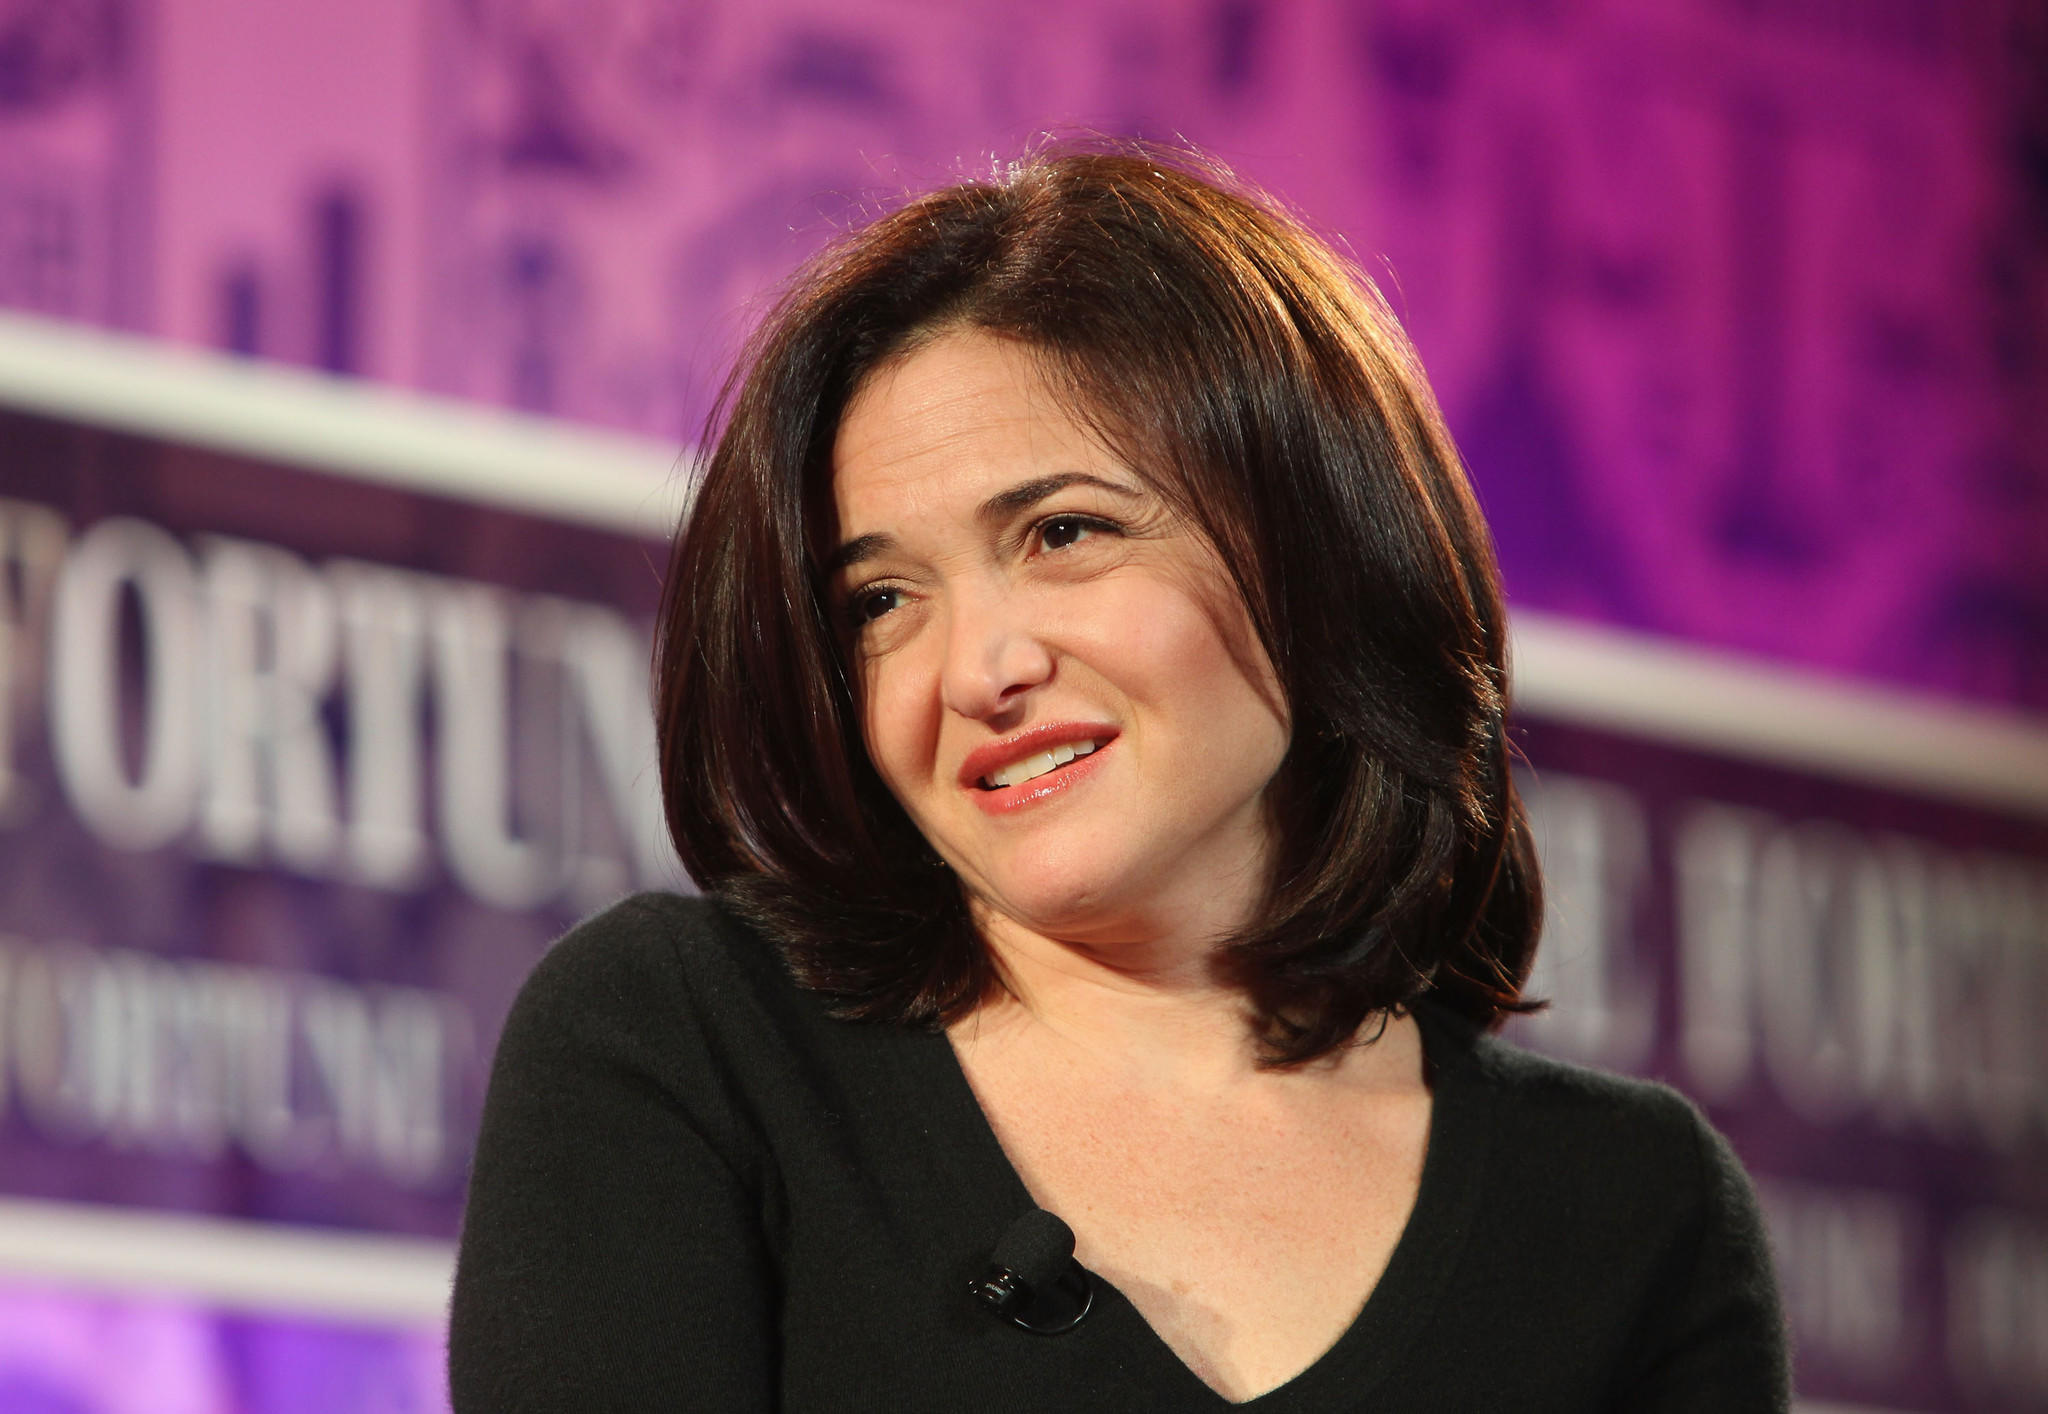 Chief operating officer of Facebook Sheryl Sandberg speaks onstage at the FORTUNE Most Powerful Women Summit.